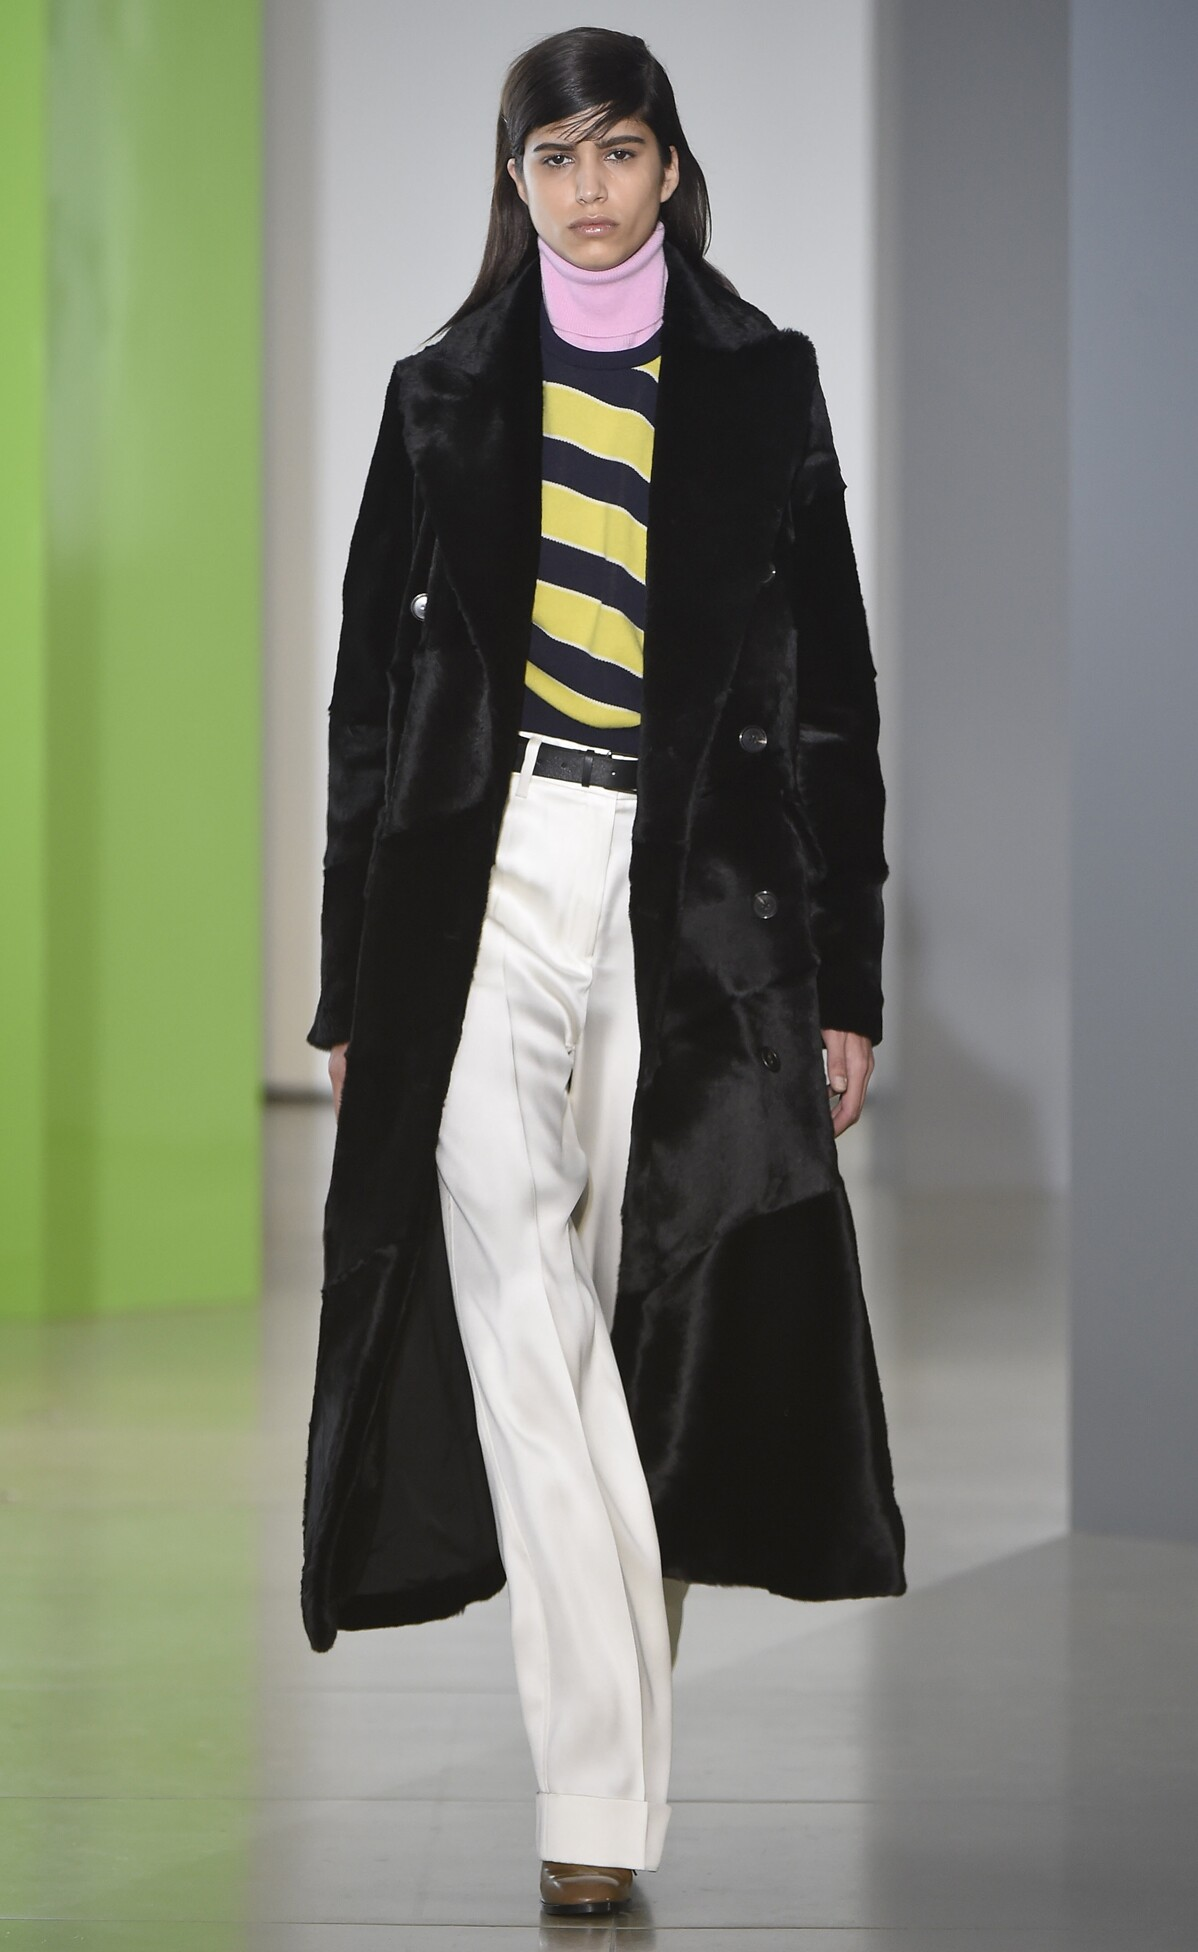 Jil Sander Fall Winter 2015 16 Womenswear Collection Milan Fashion Week Fashion Show